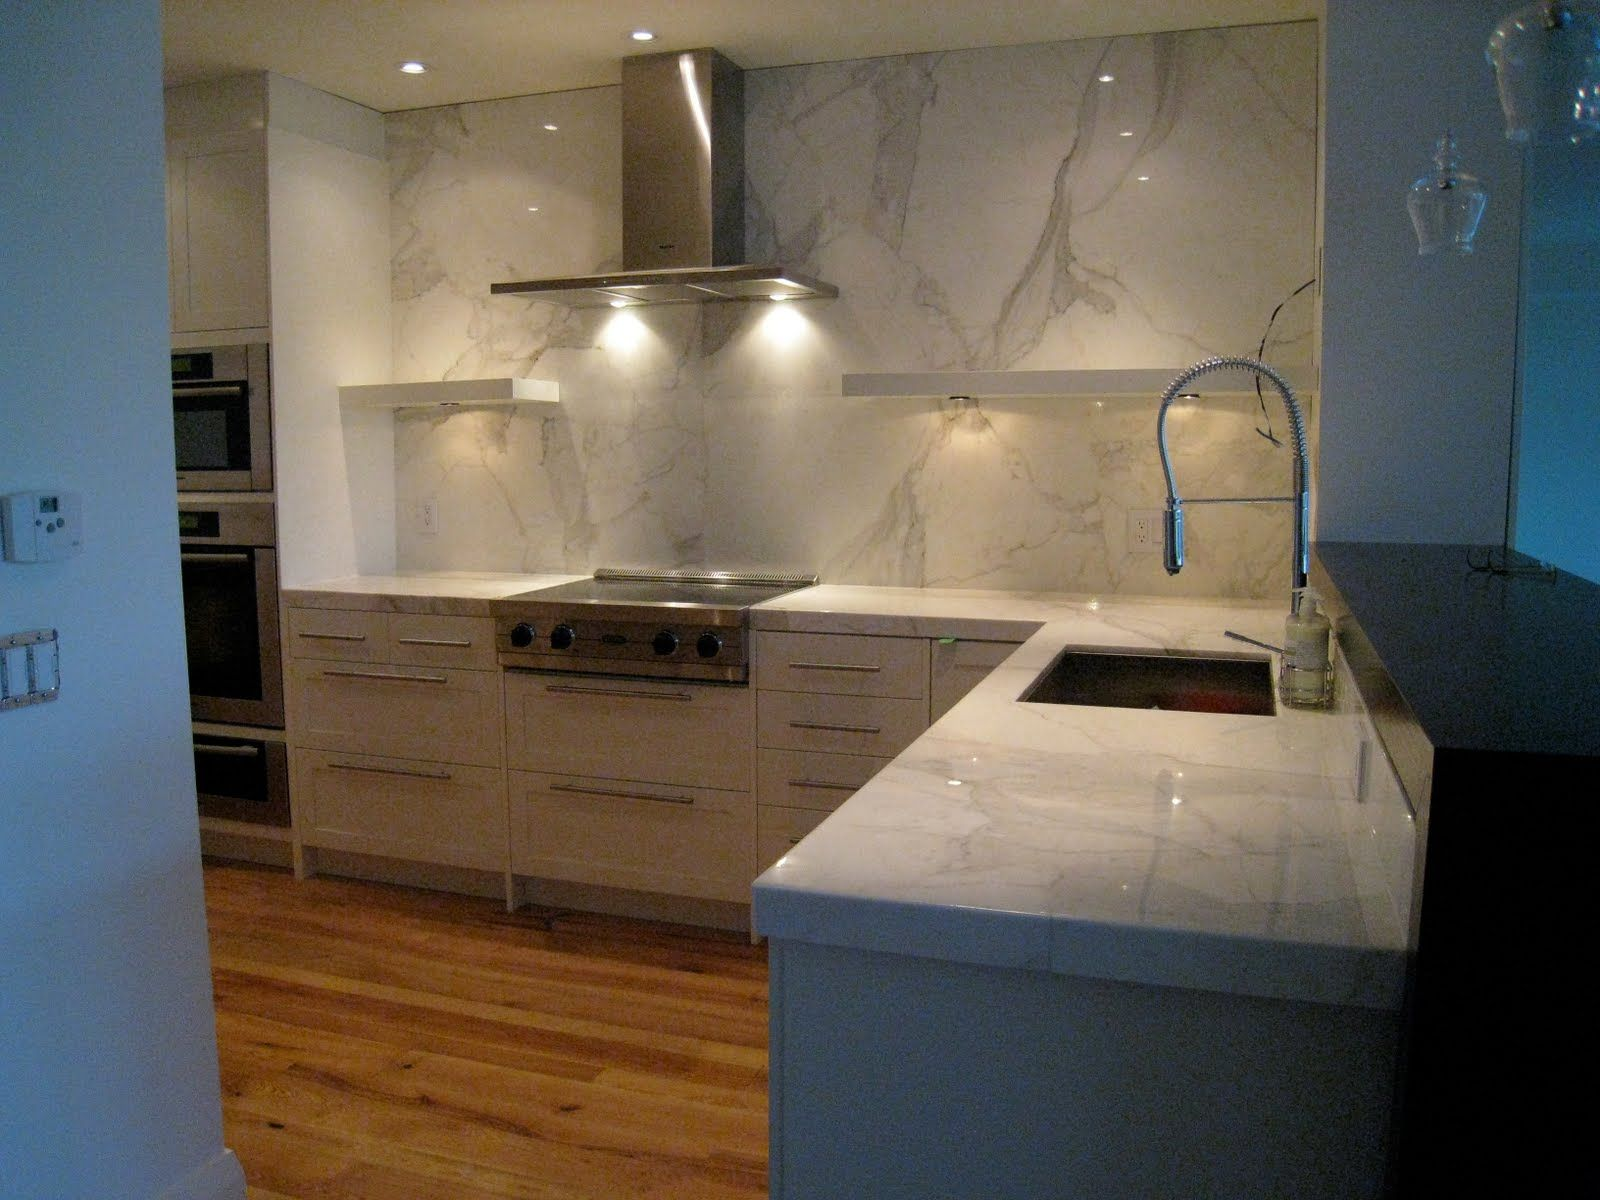 ikea cabinets | of painted Ikea kitchens, | For my New Kitchen ...